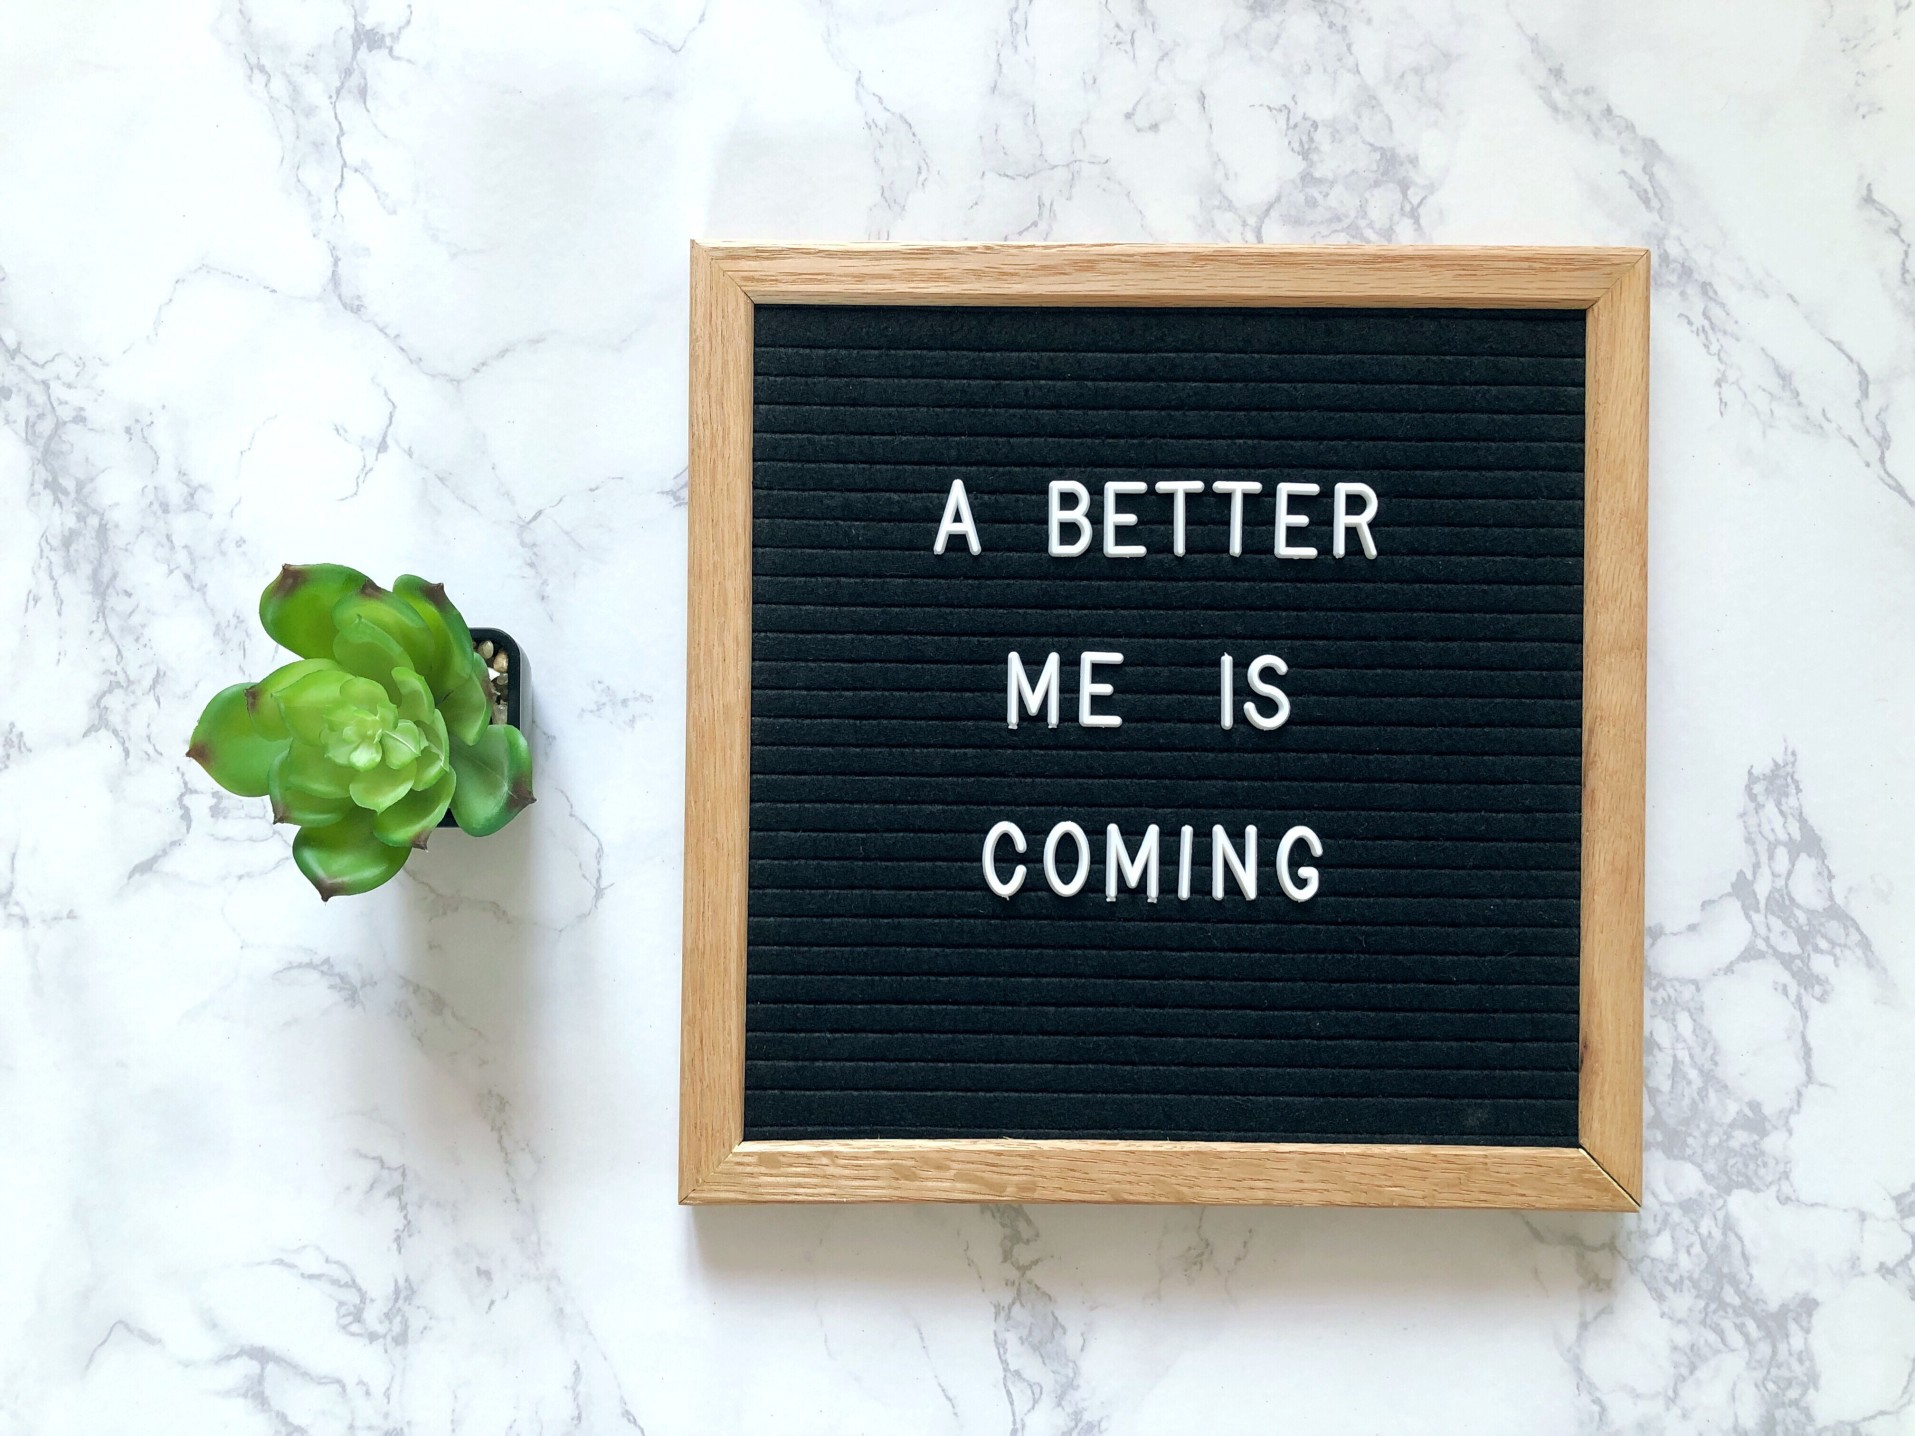 A sign reading 'A better me' sits against a white background. A small plant sits beside it.